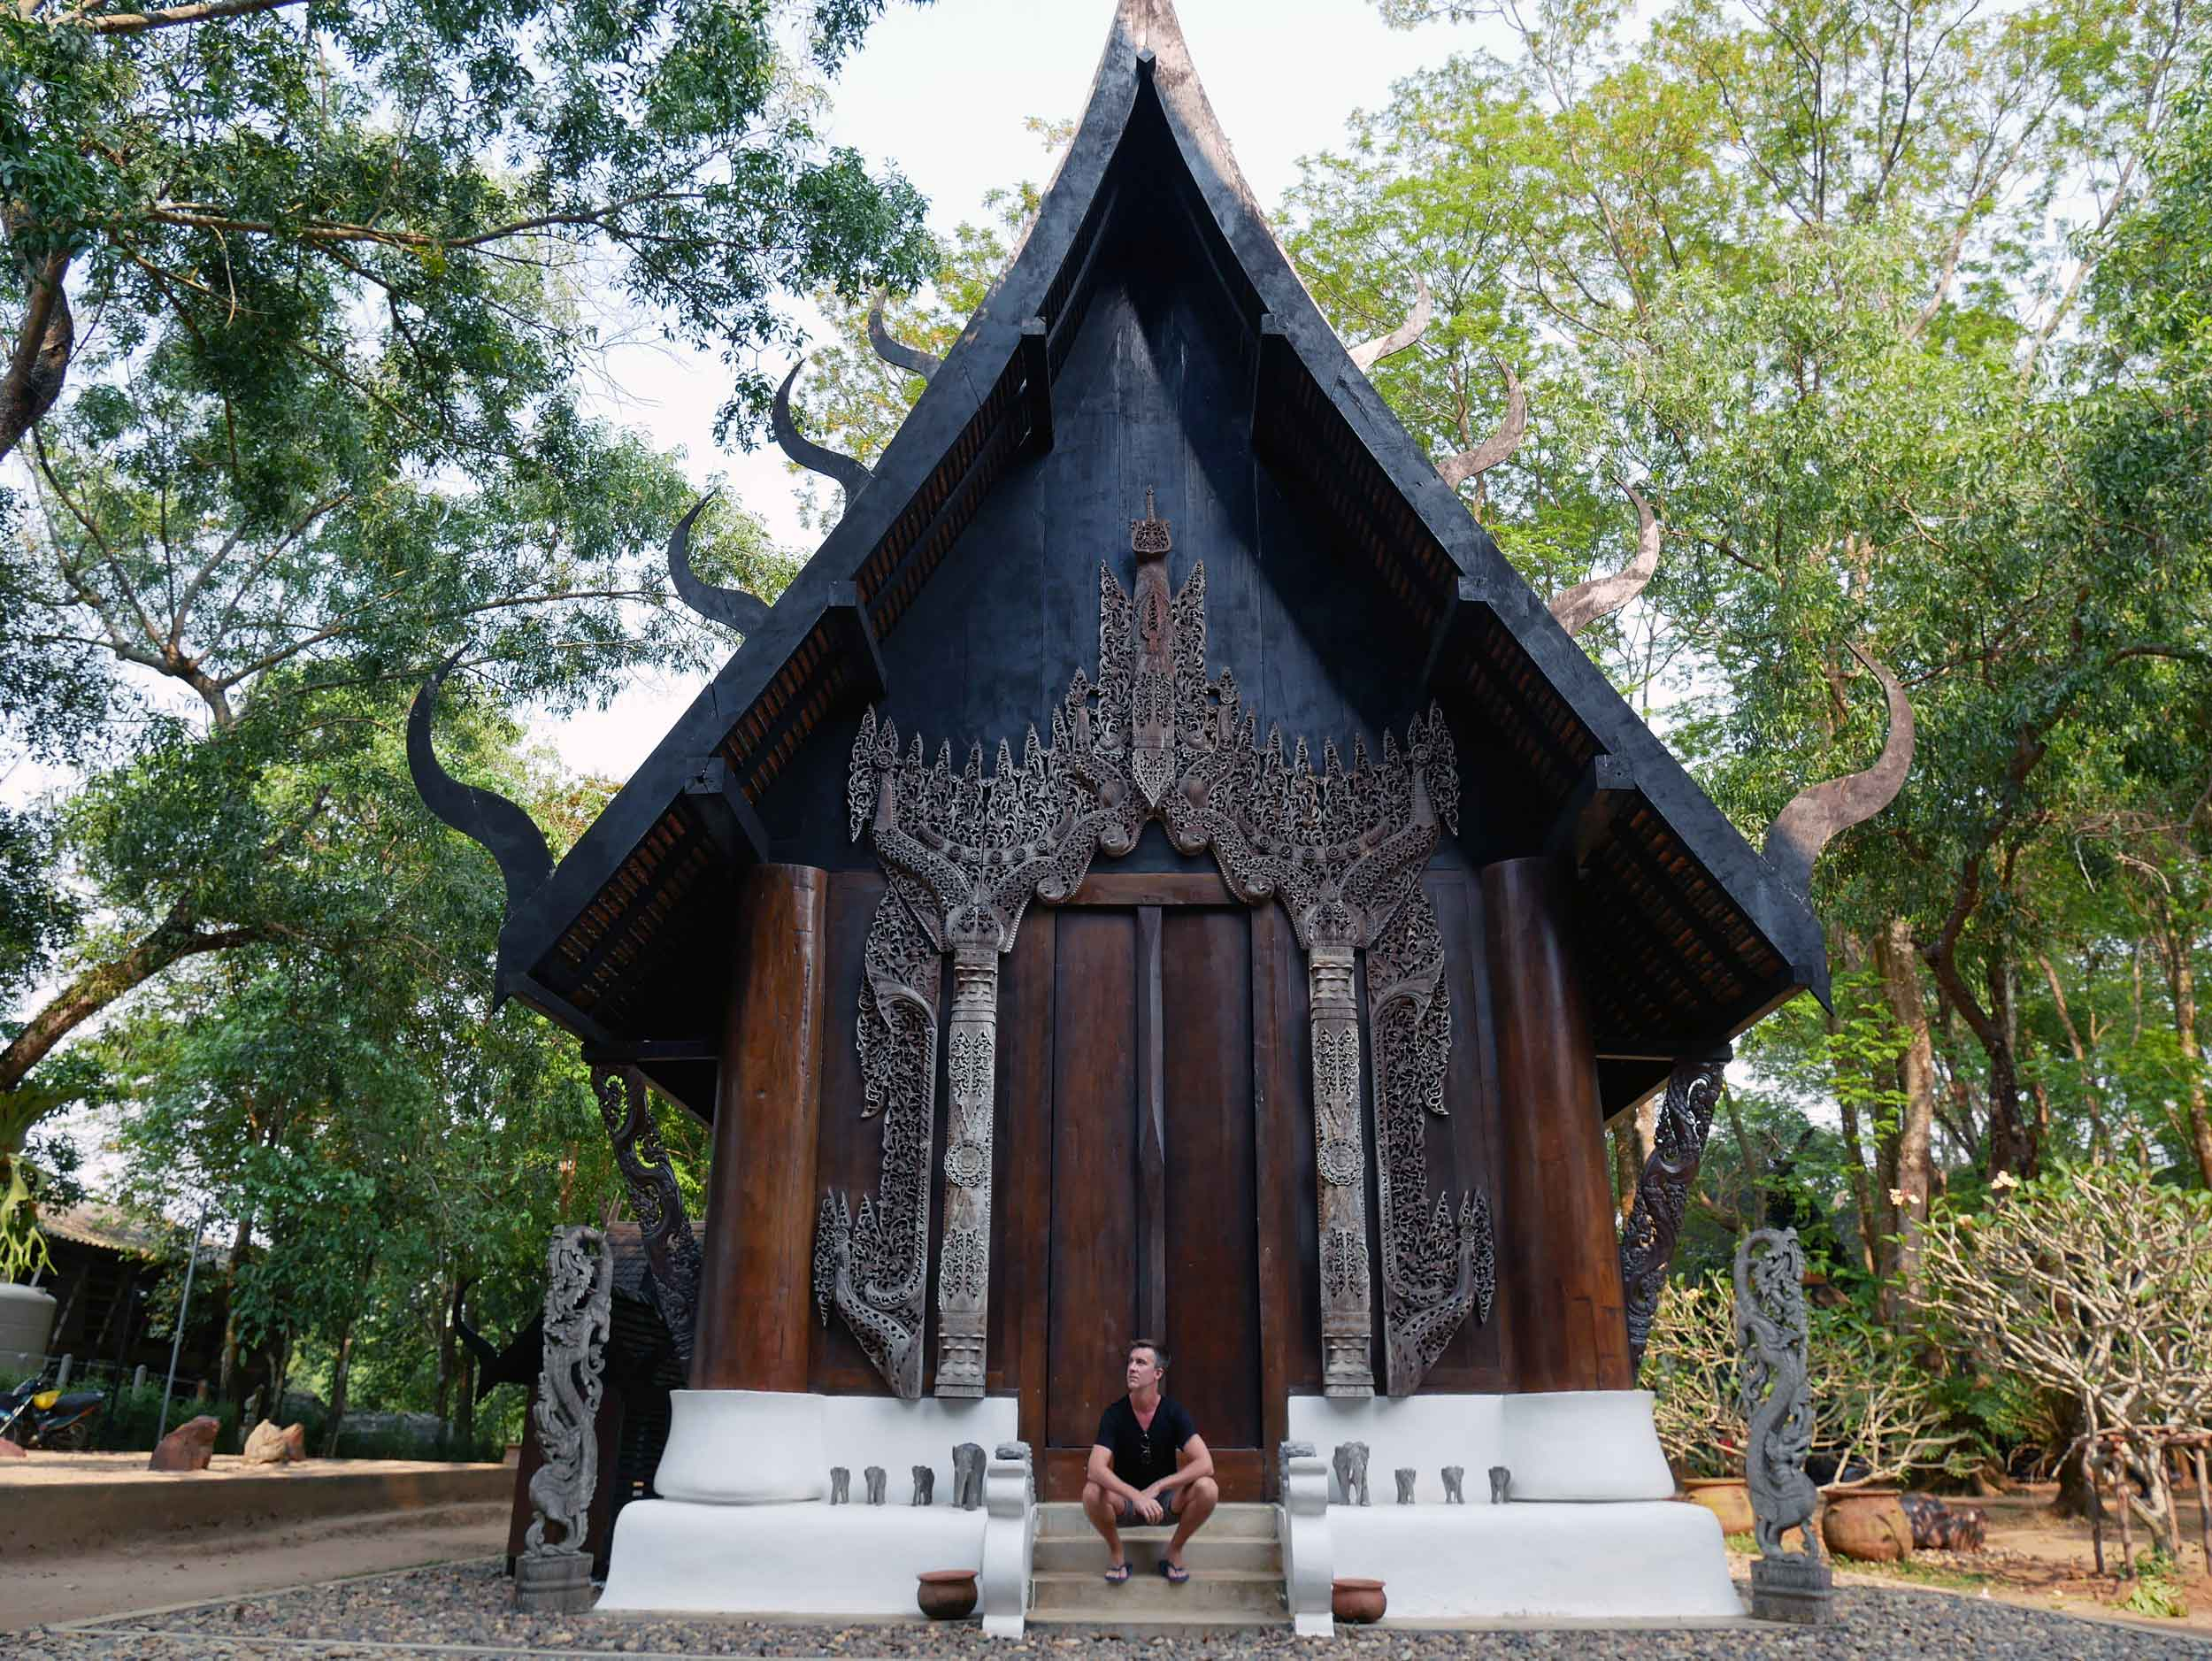 The Black House is actually made up of more than 40 buildings, each filled with displays of Thawan Duchanee's work.